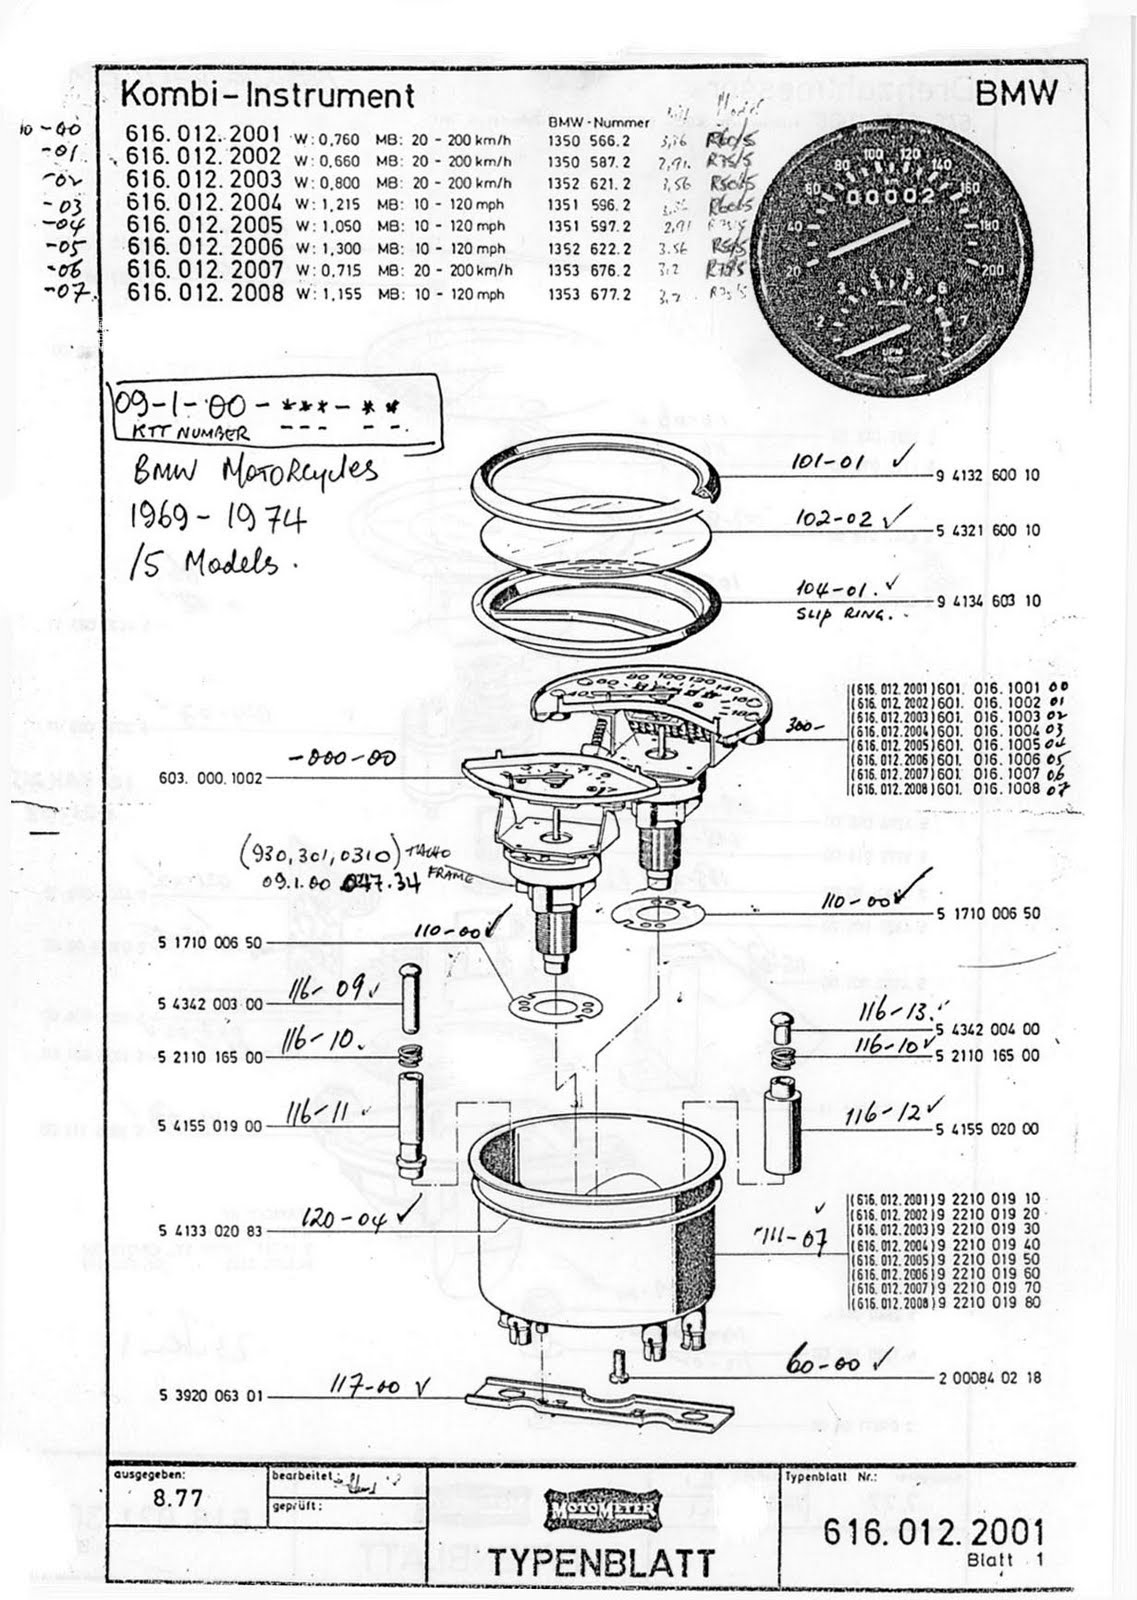 May 2011 1971 Bmw R75 5 Motorcycle Restoration Engine Exploded View 6th